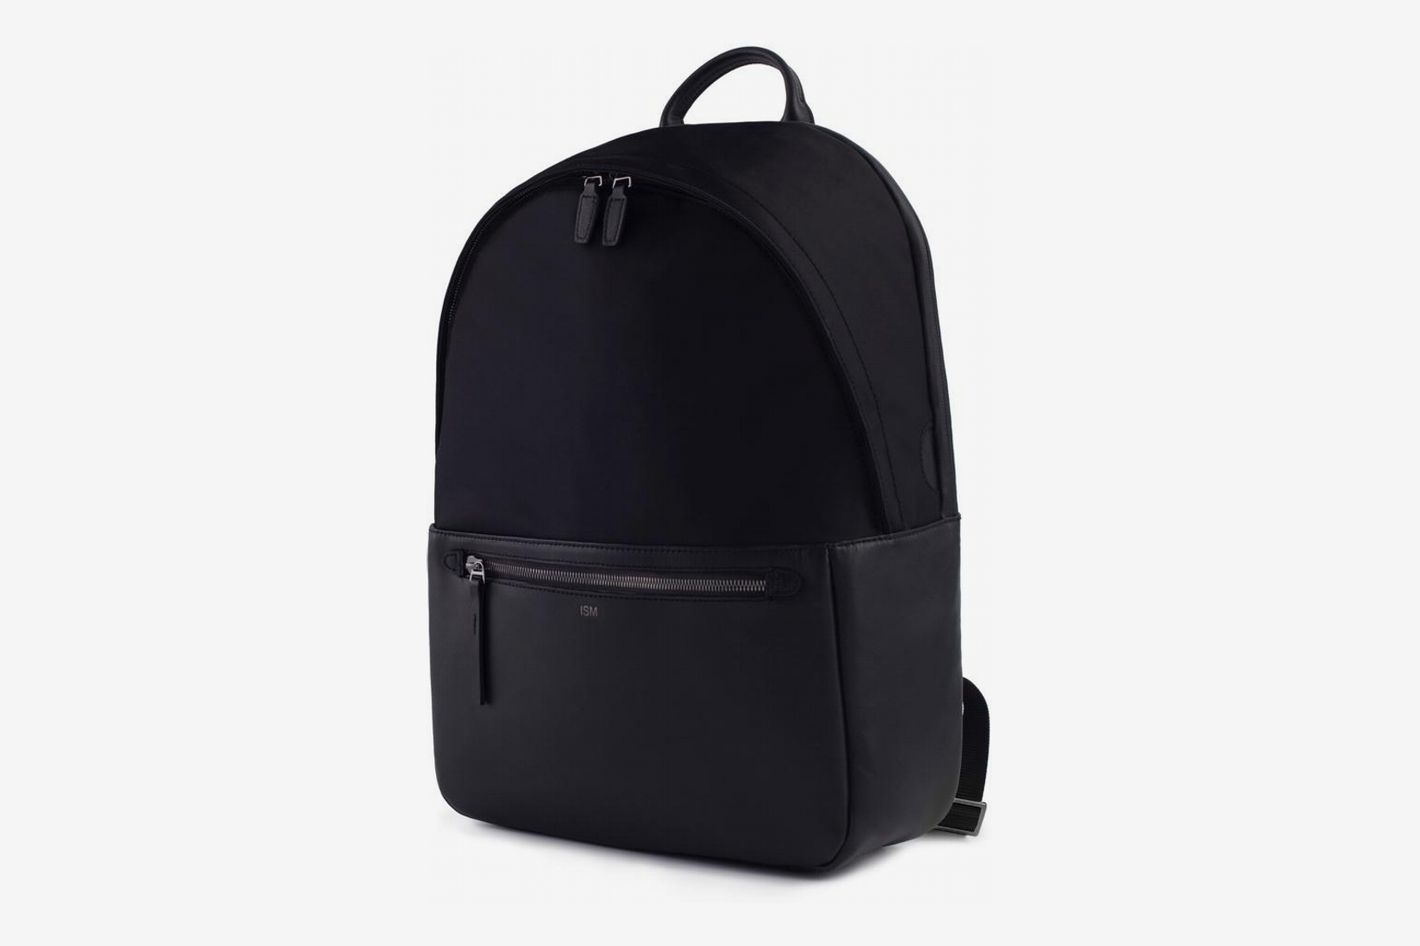 ISM The Classic (Black)